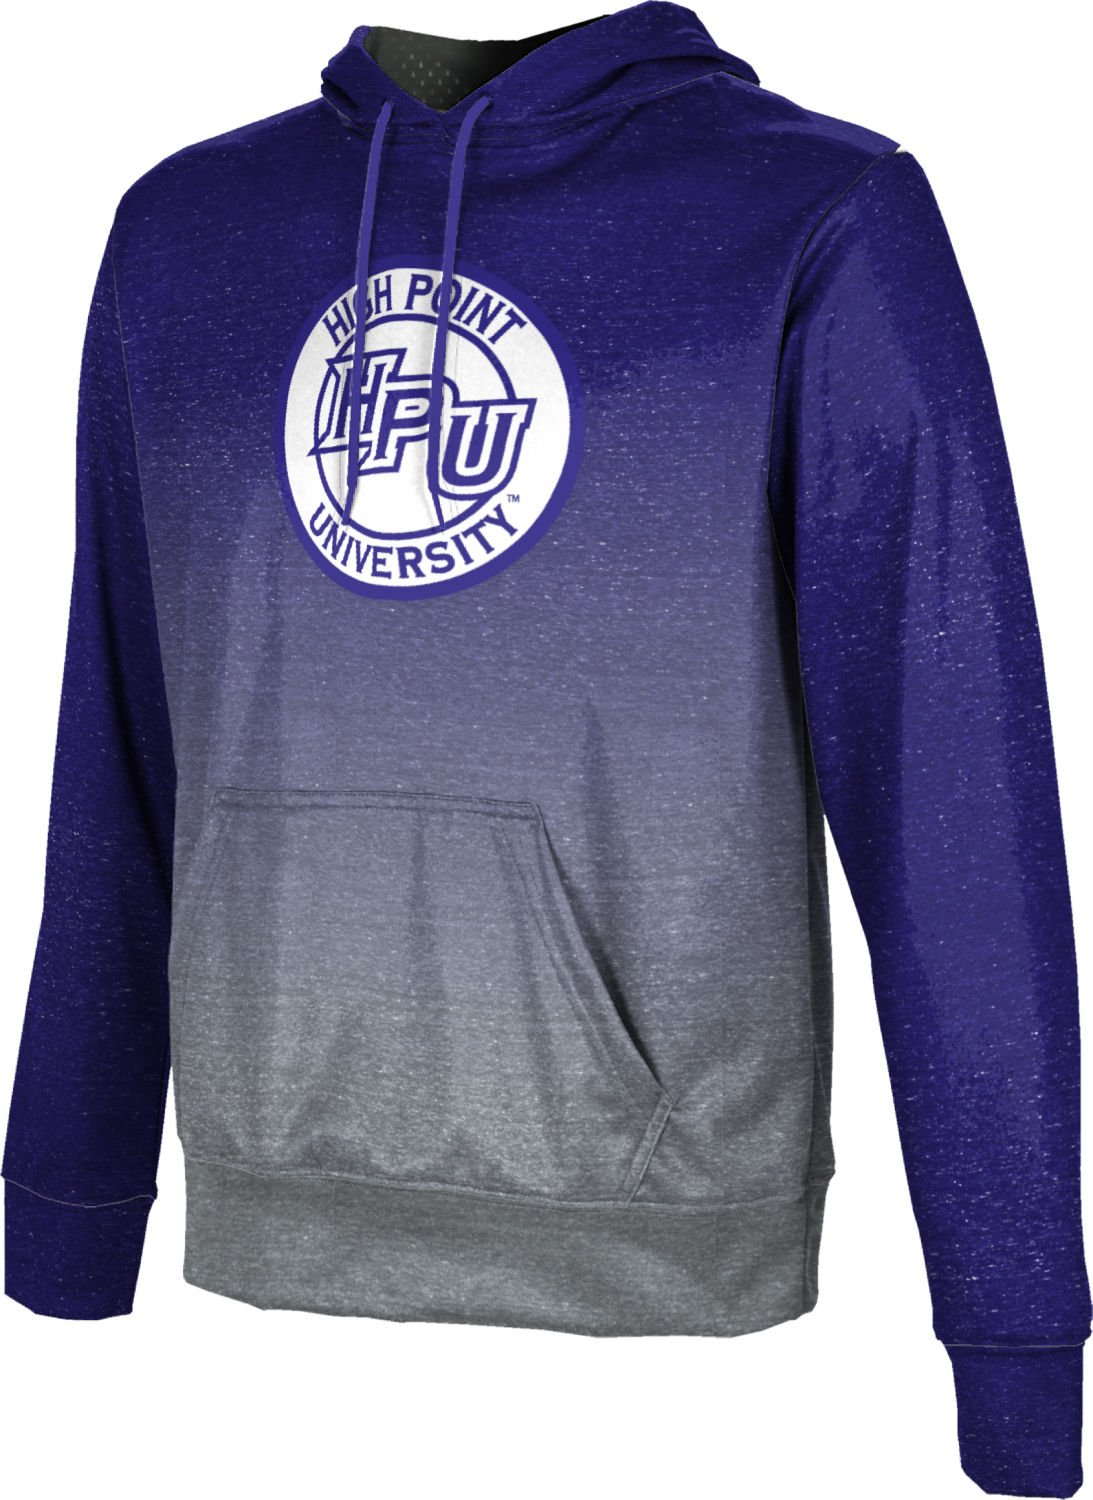 High Point University Boys' Pullover Hoodie, School Spirit Sweatshirt (Ombre) FD001 Purple and Gray